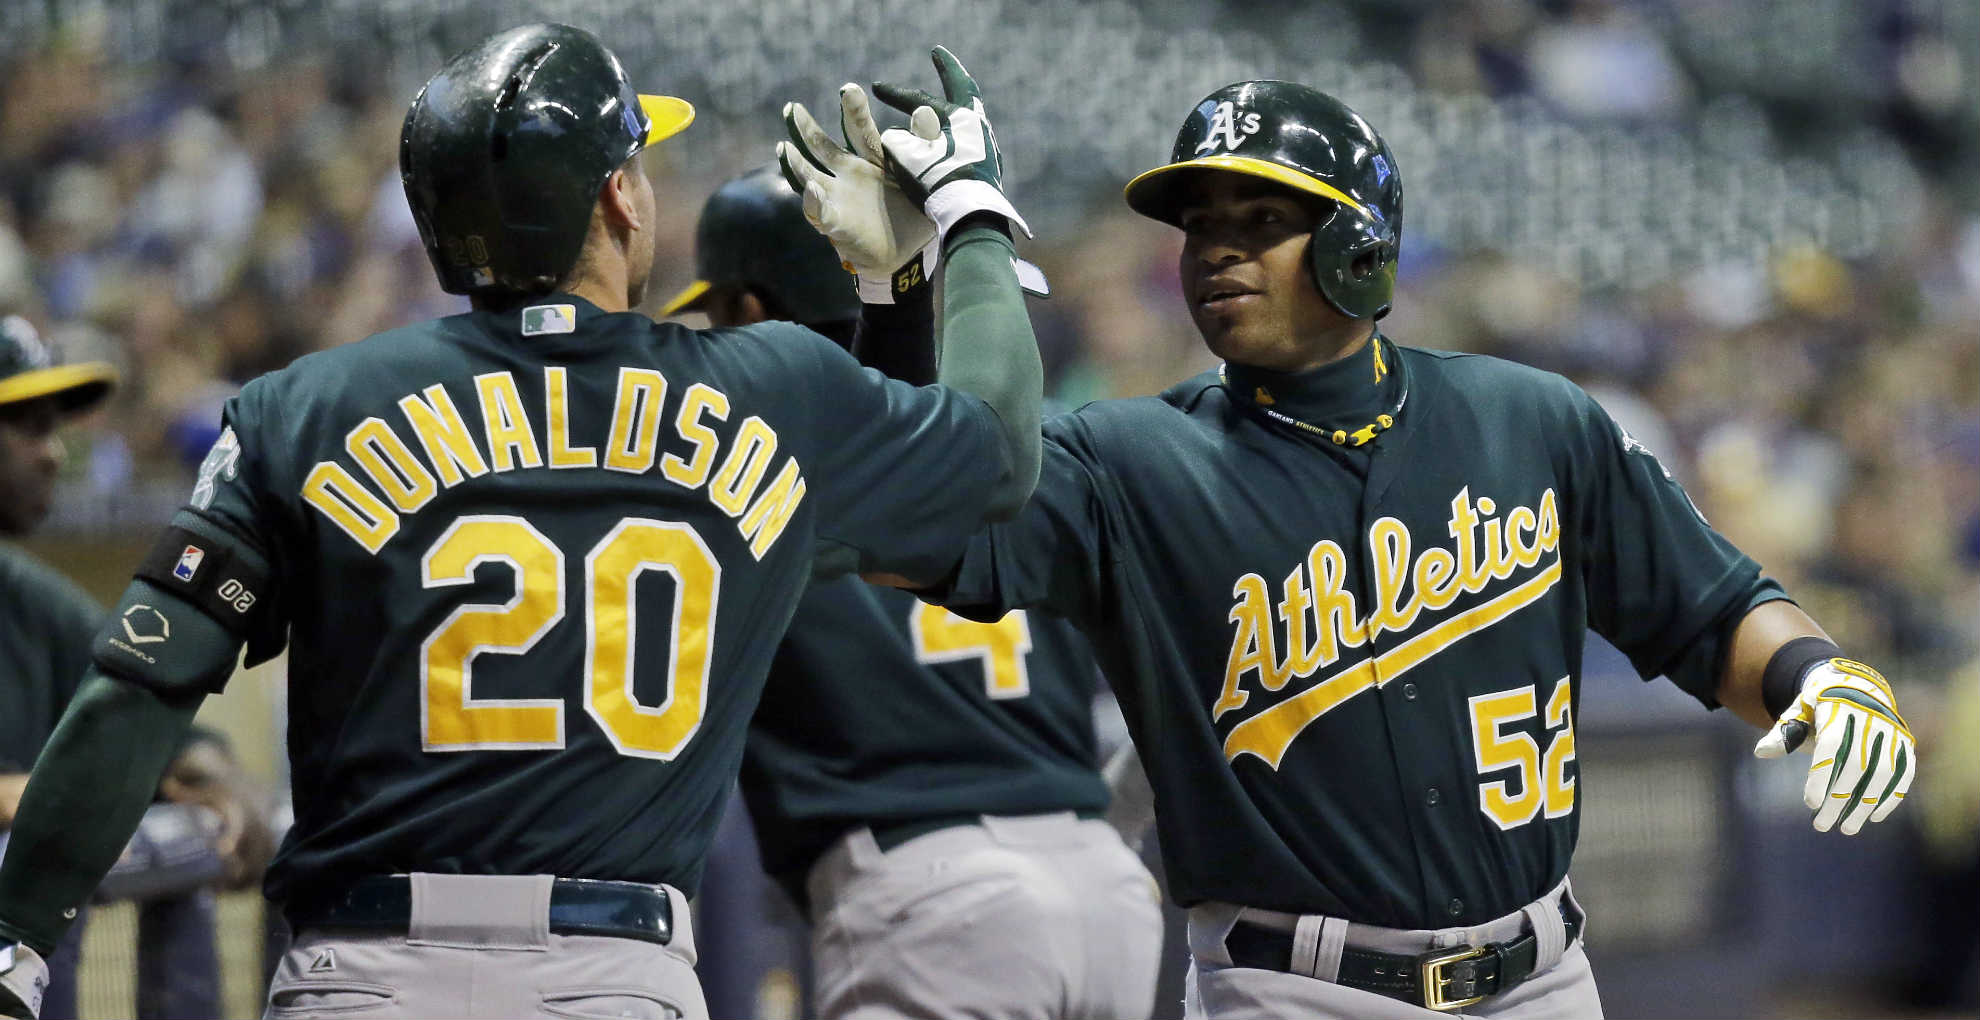 Oakland A's 2014 fantasy baseball team preview